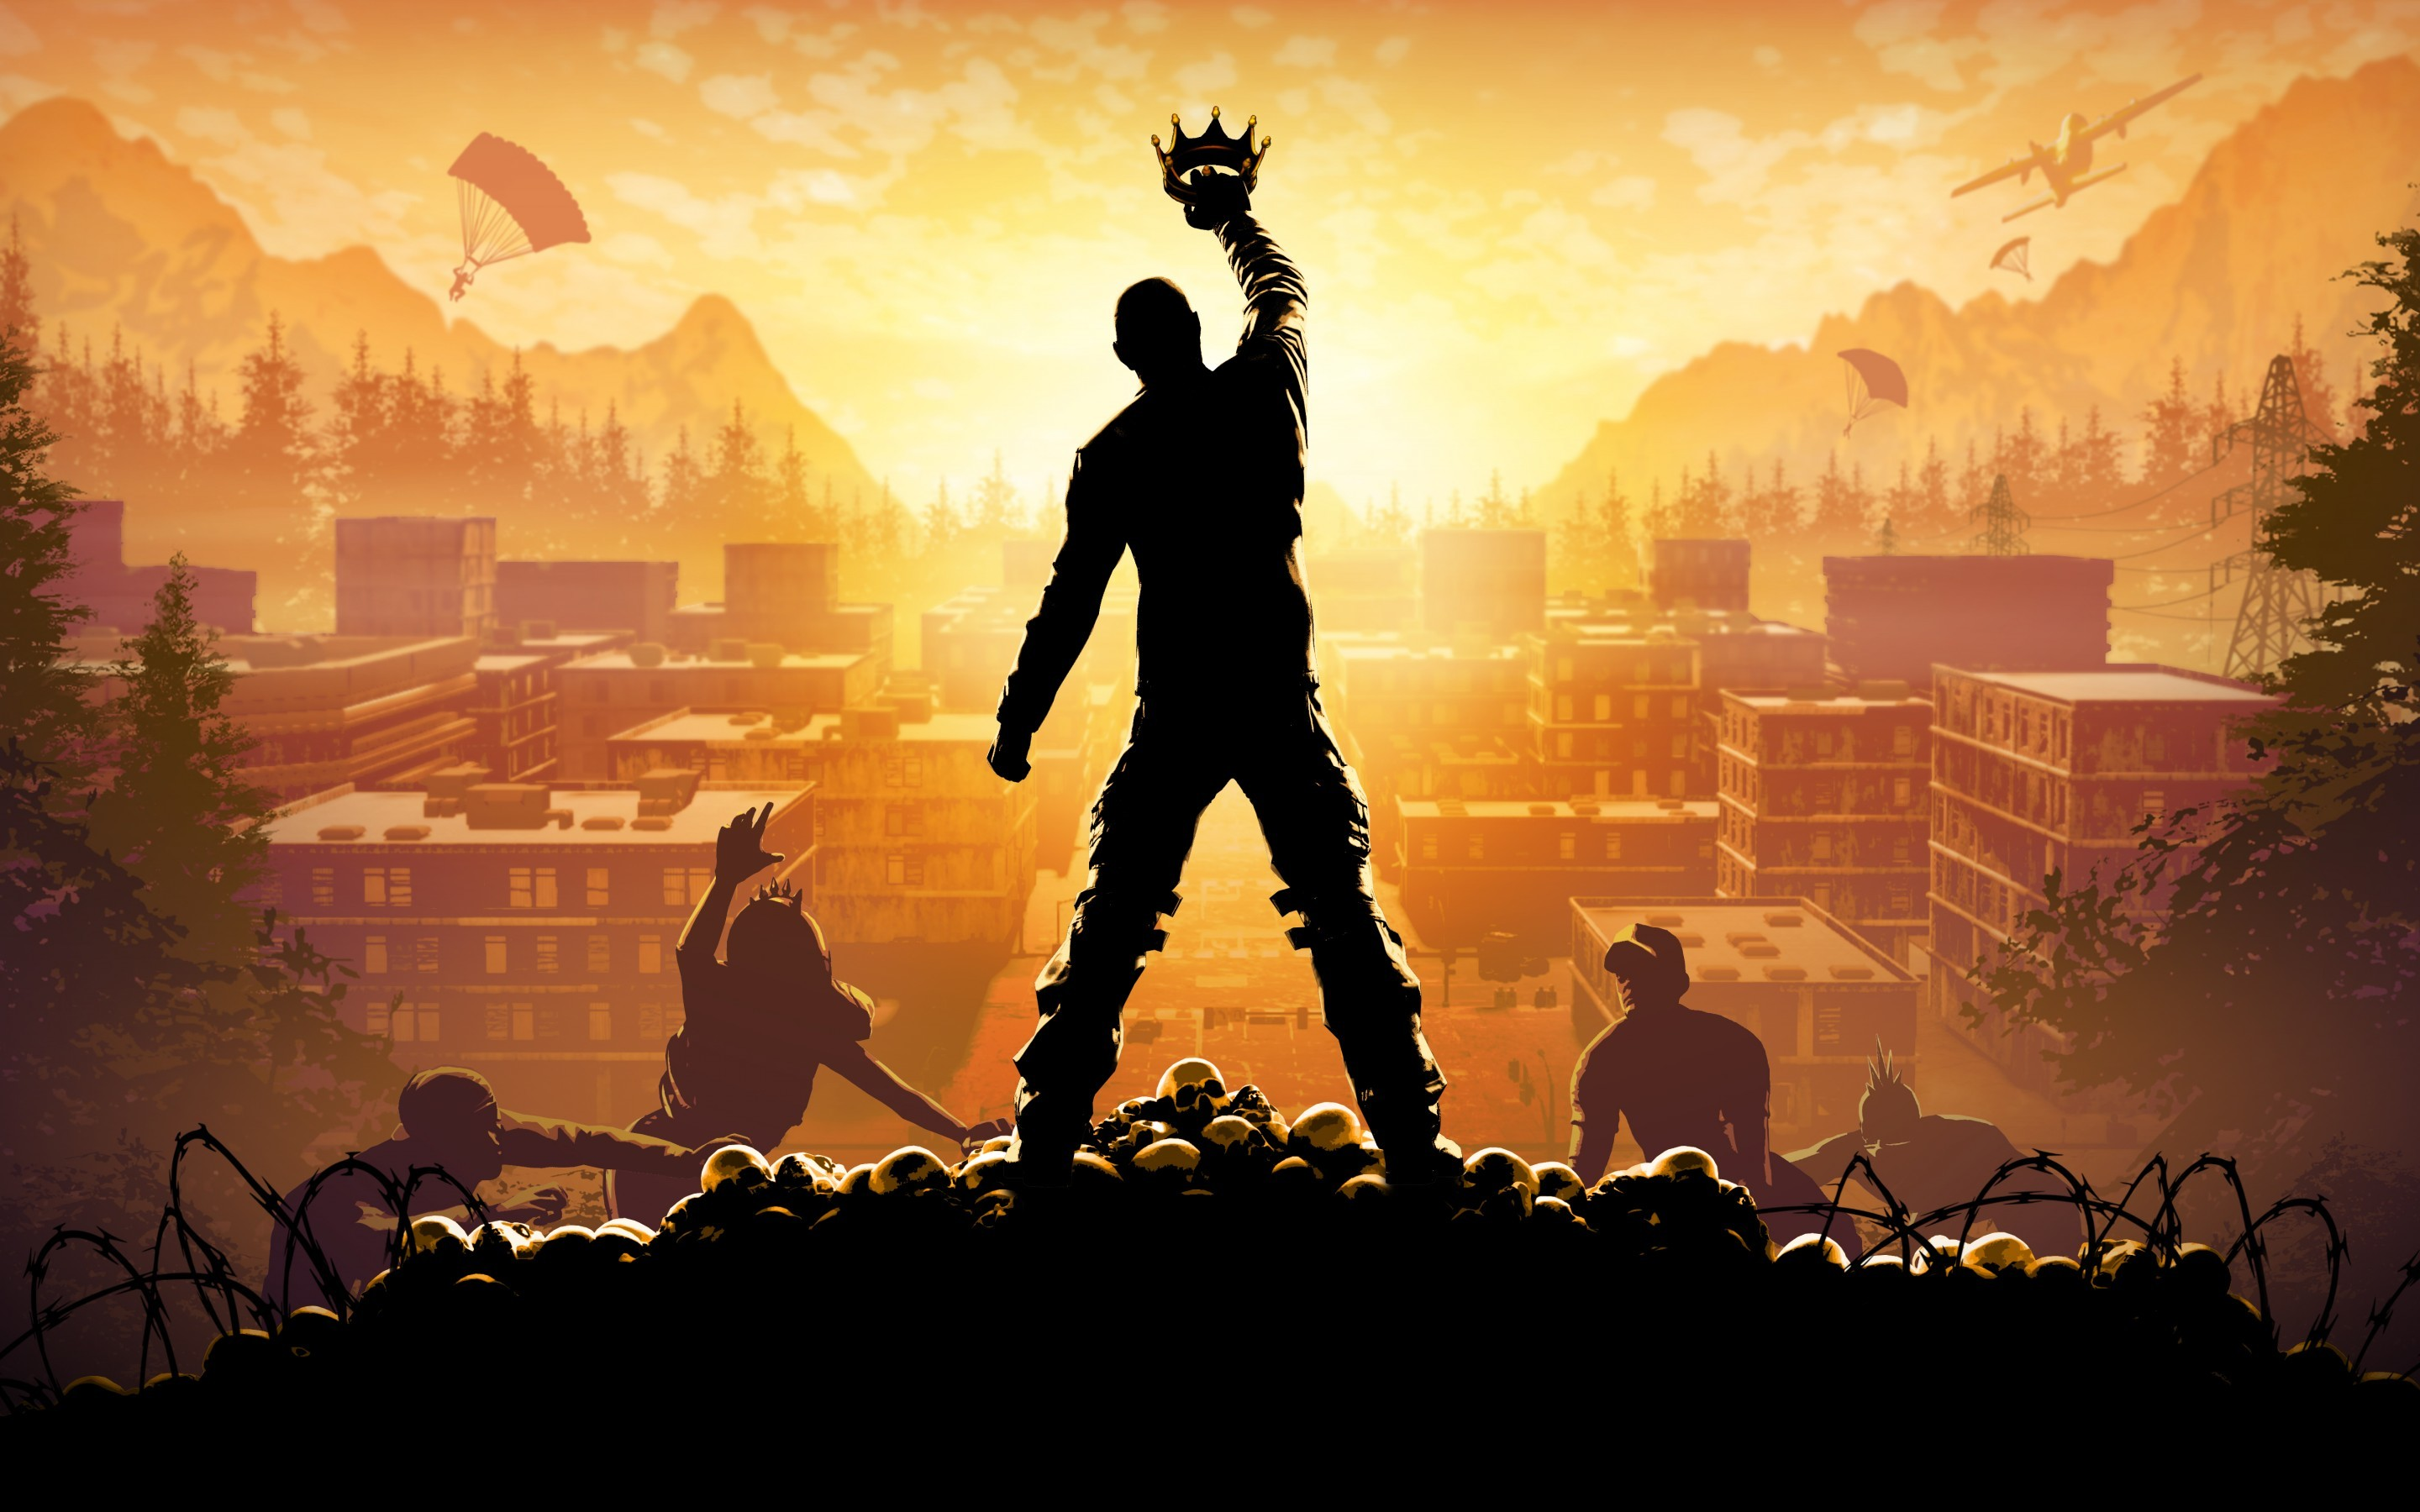 2880x1800 Games / H1Z1: King of the Kill Wallpaper